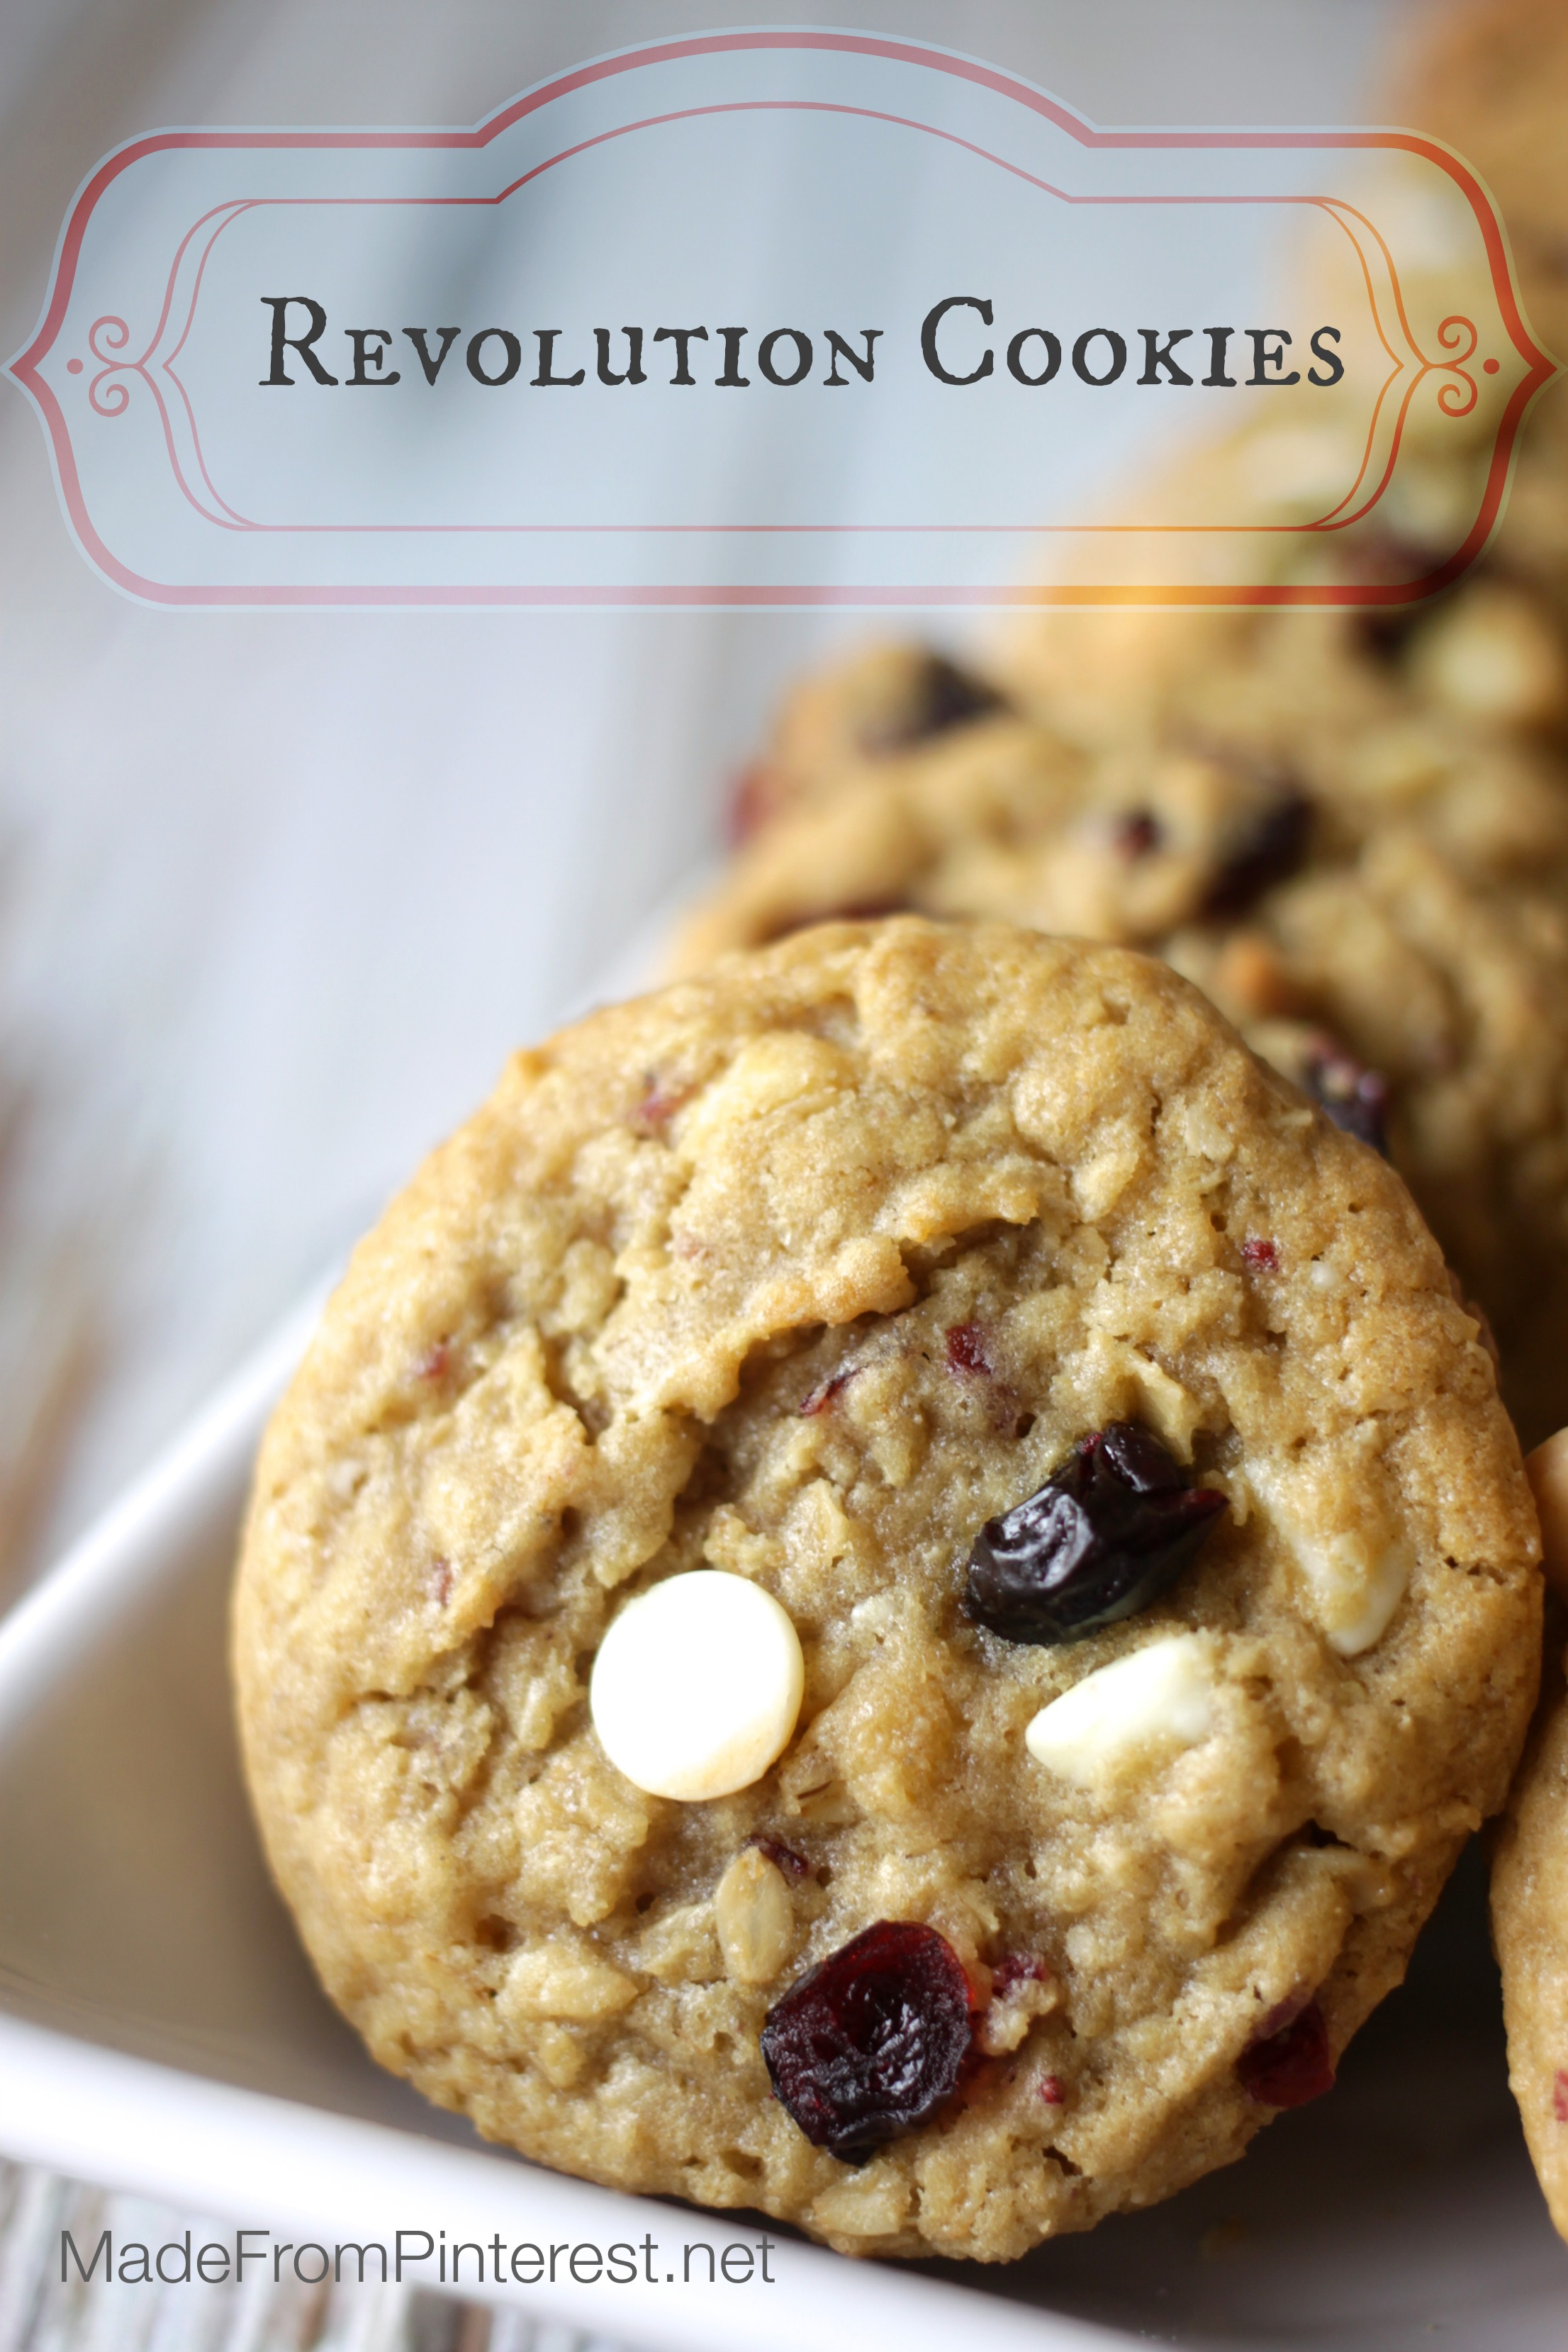 Revolution Cookies are a cookie the Founding Fathers would have been proud to eat. With oatmeal, white chocolate chips, dried cranberries and blueberries these red white and blue all American cookies are truly fantastic!   #Cookie #Cookie Recipe